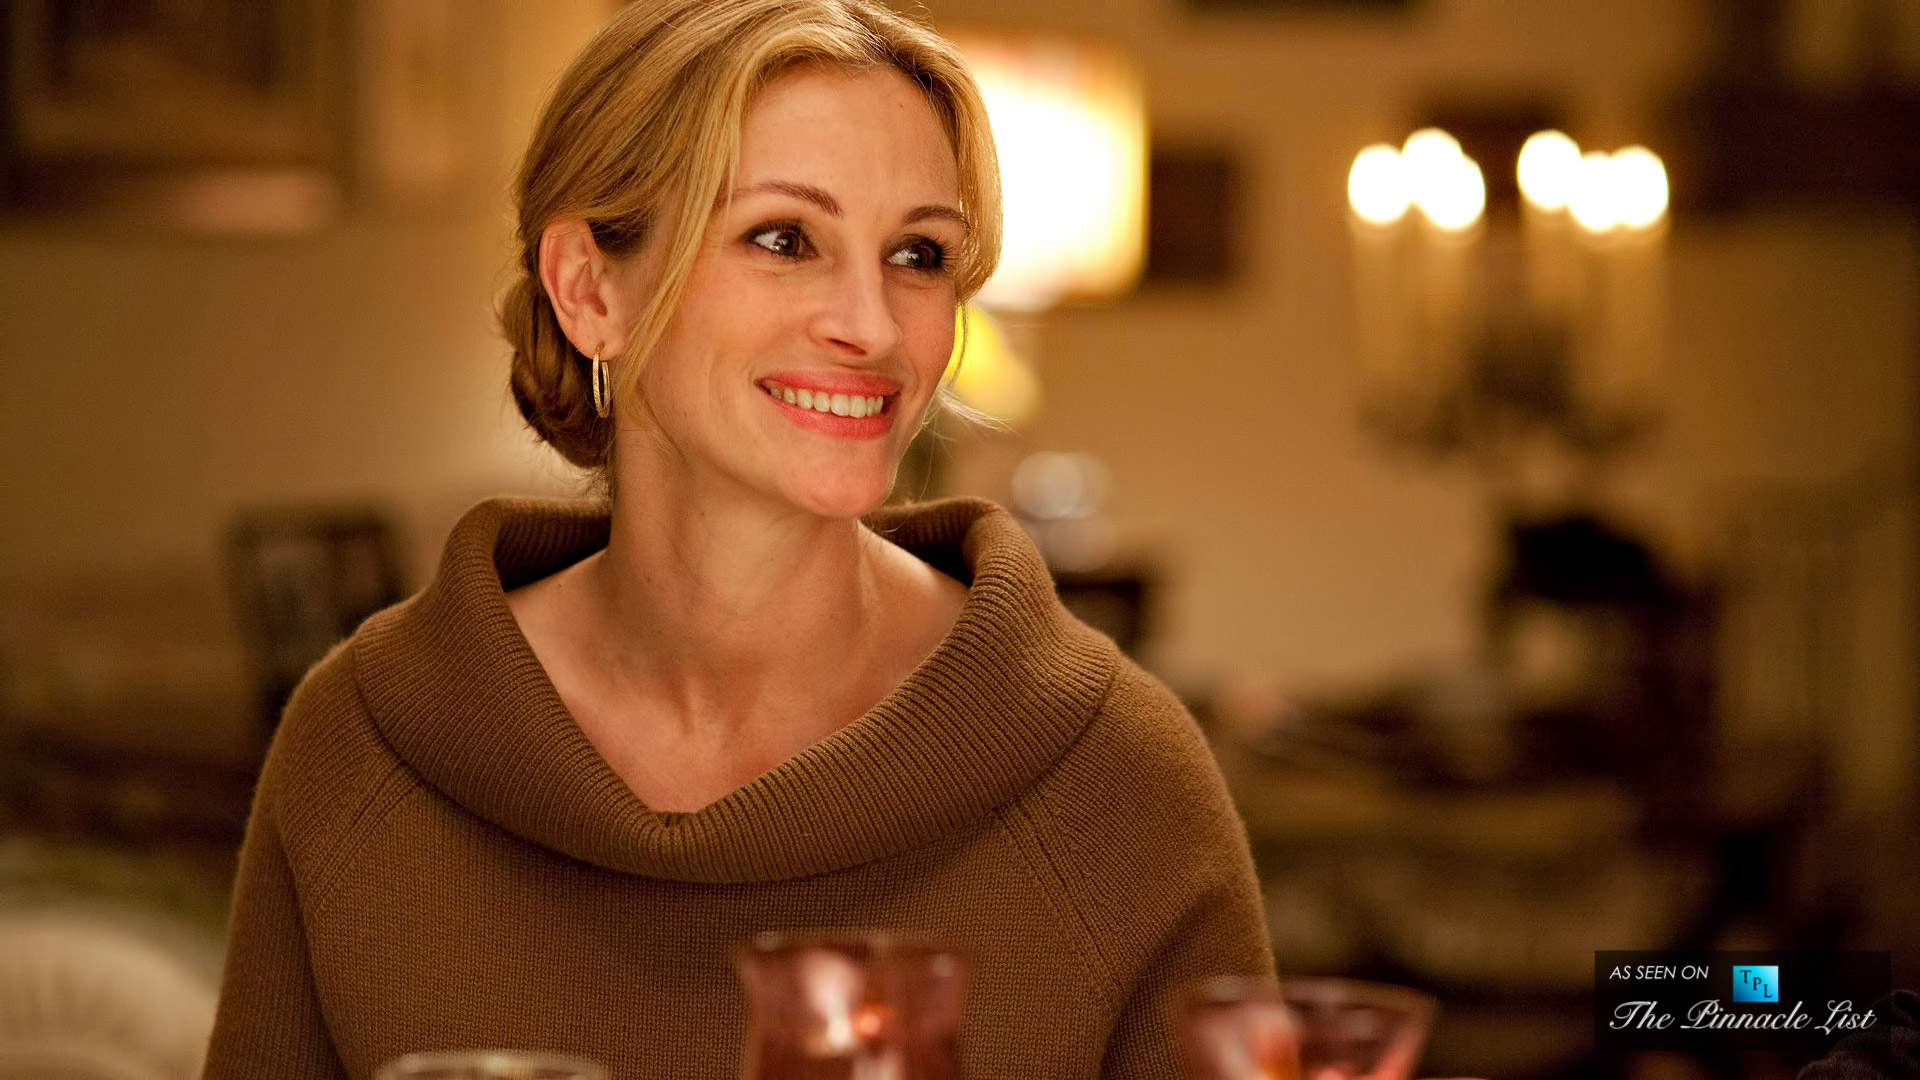 Julia Roberts - Protecting High Value Assets - Five Unusual and Noteworthy Celebrity Insurance Policies